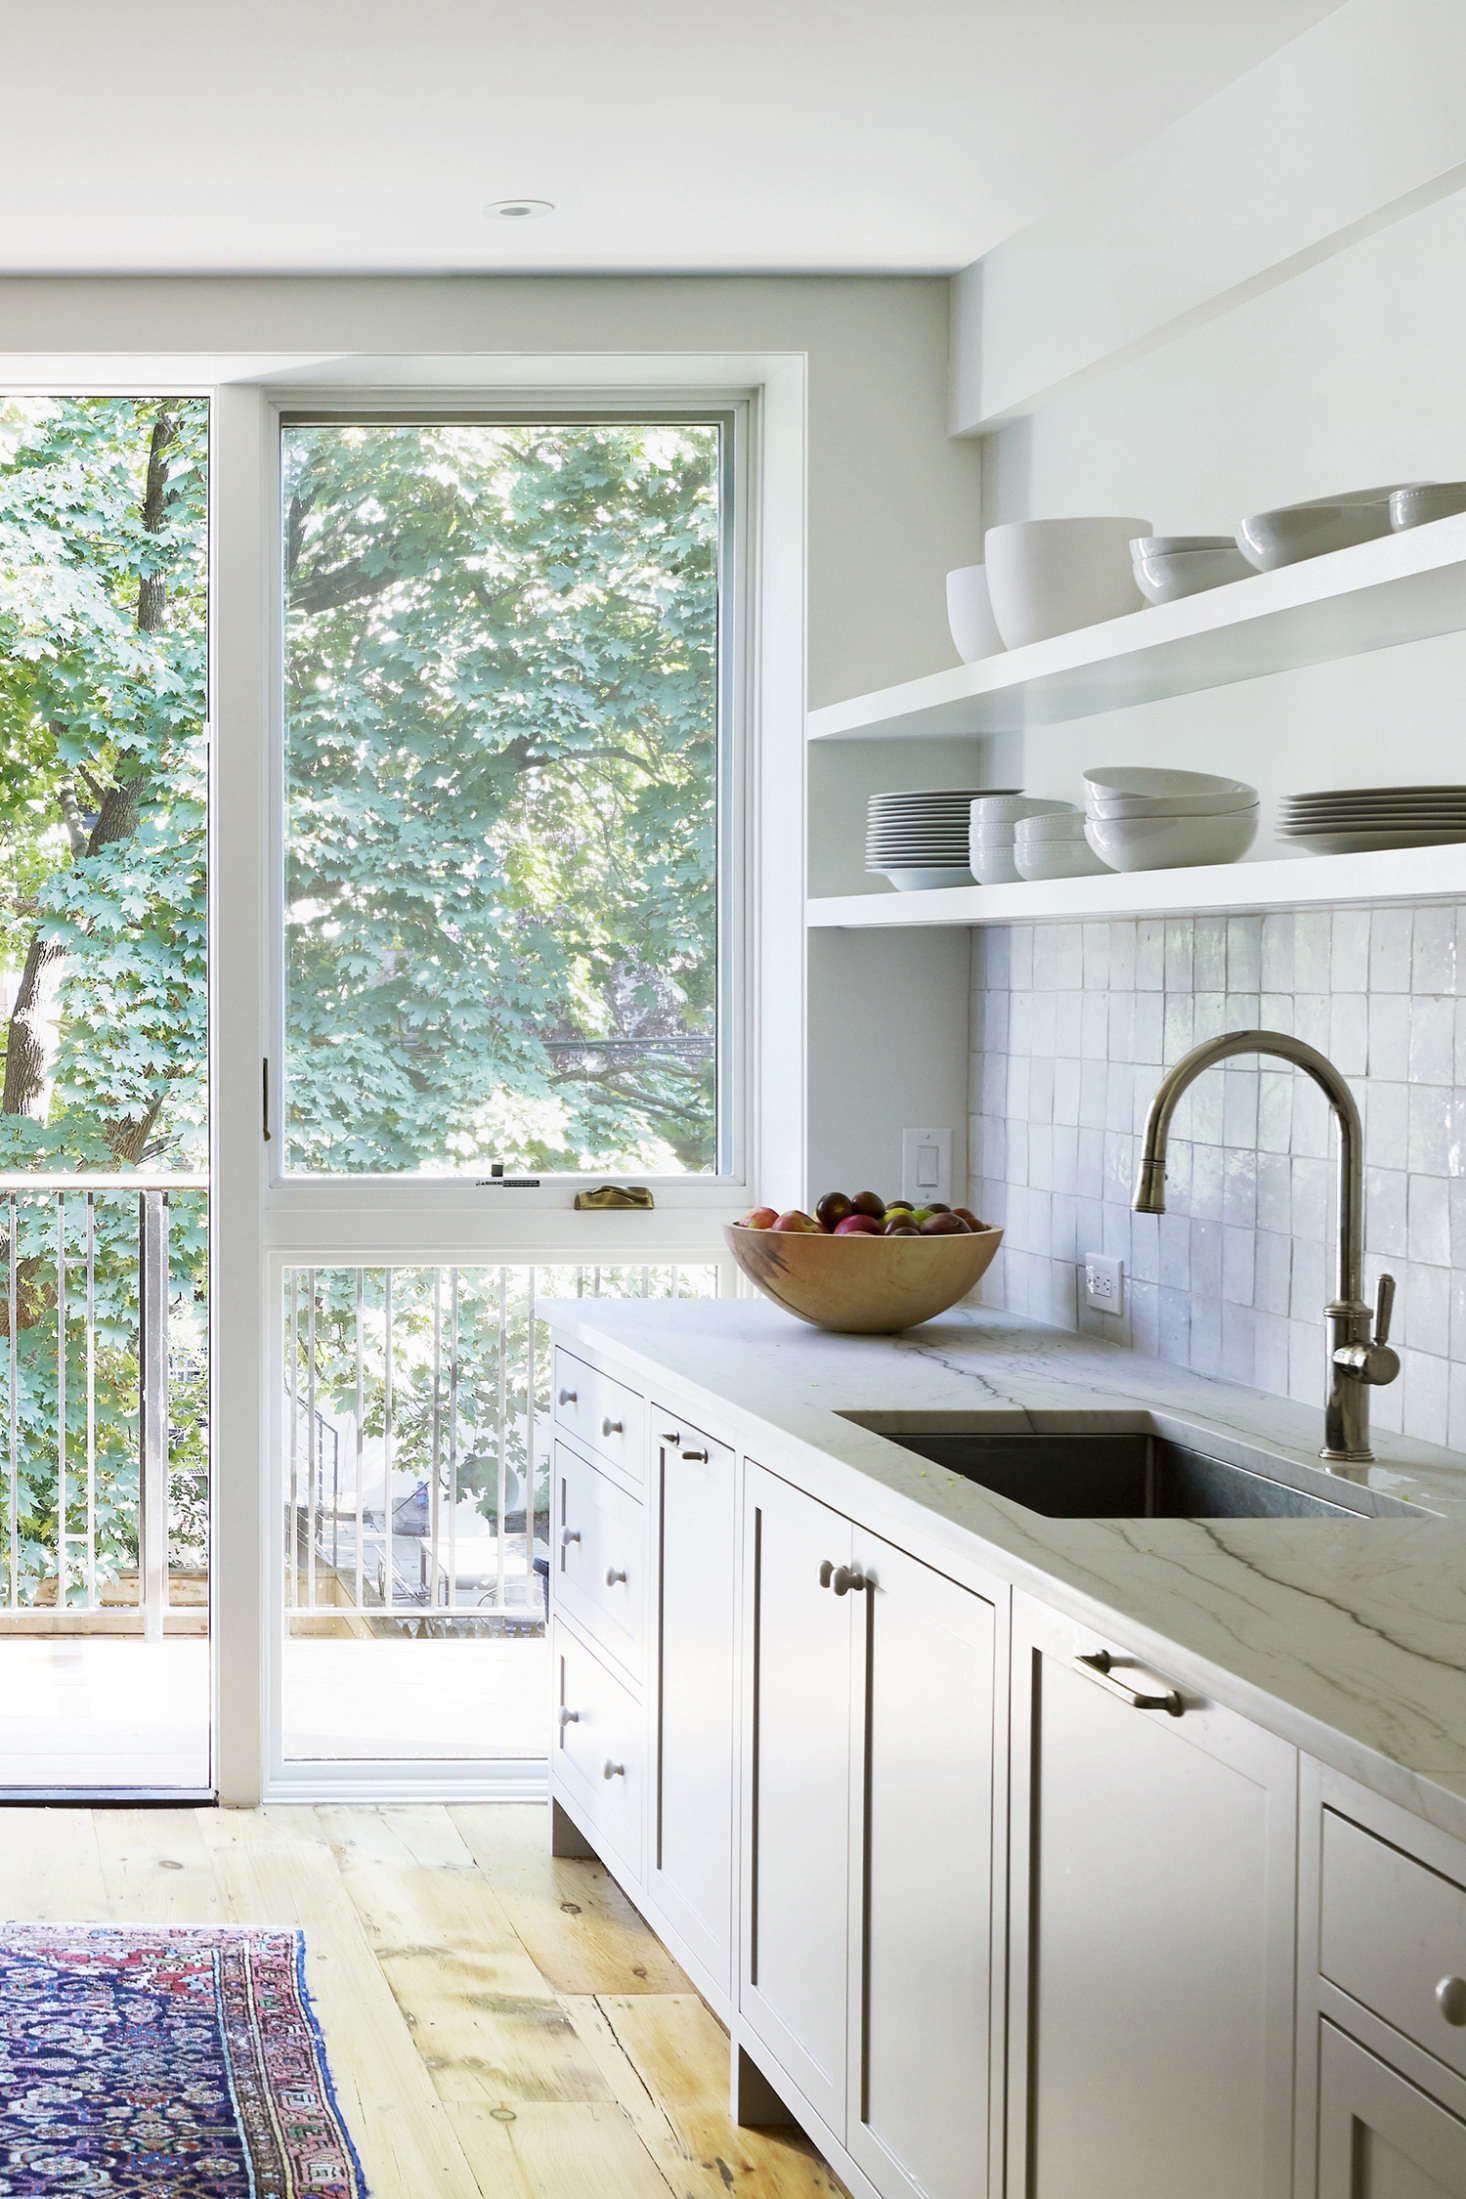 The owners are avid cooks and bakers; in lieu of a work island, they asked that the counters be extra deep. The cabinets are a custom design with Aria Quartzite counters from SMC Stone. The kitchen woodwork was shop spray-painted in Farrow & Ball&#8